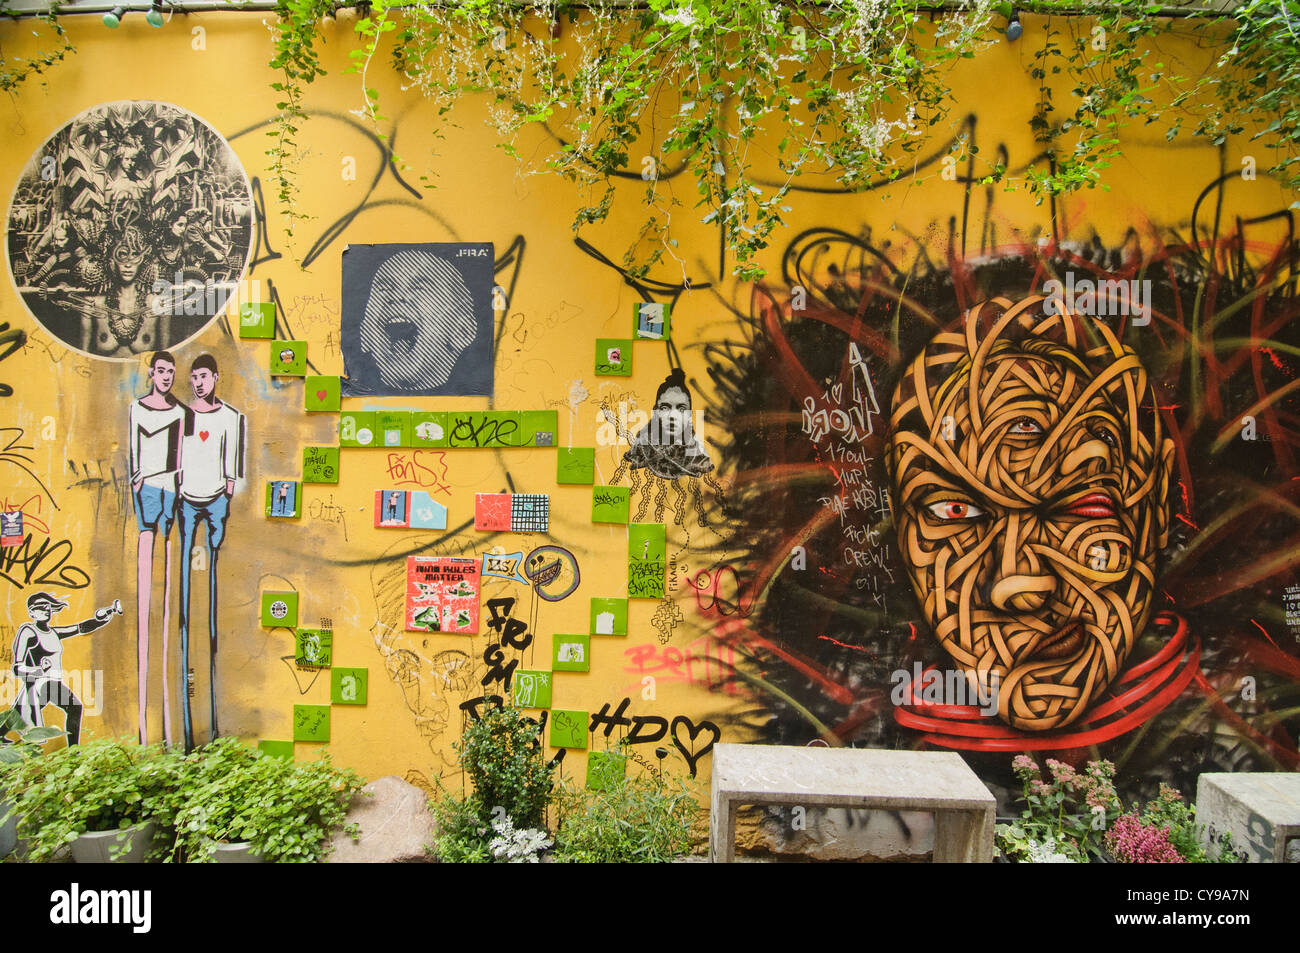 street art, a thriving alternative subculture in Berlin, Germany ...